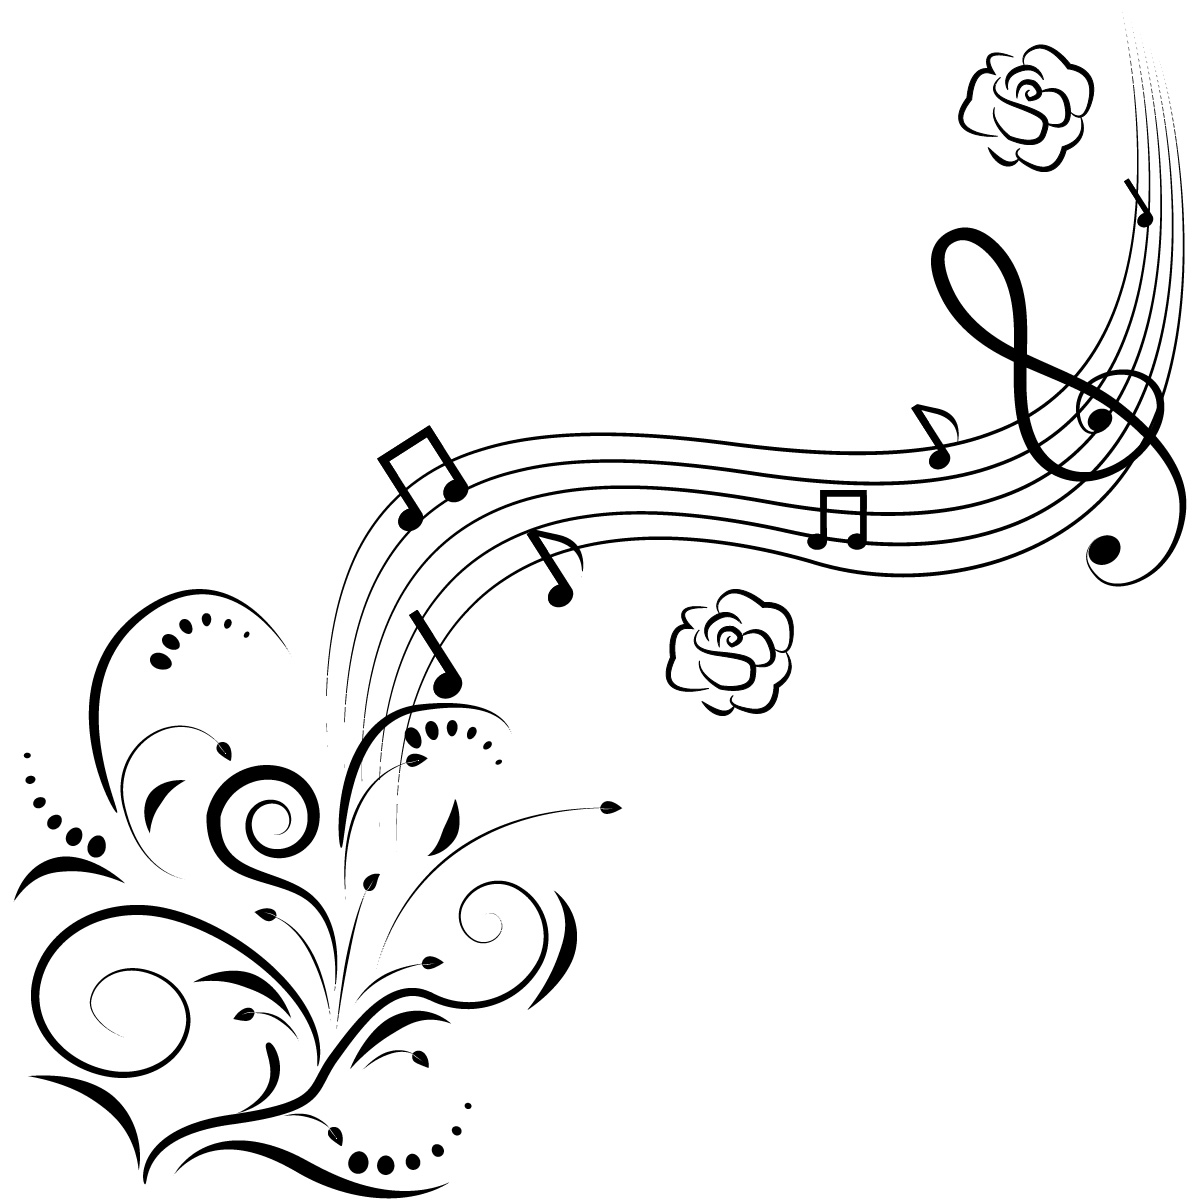 free printable music note coloring pages music note coloring page design